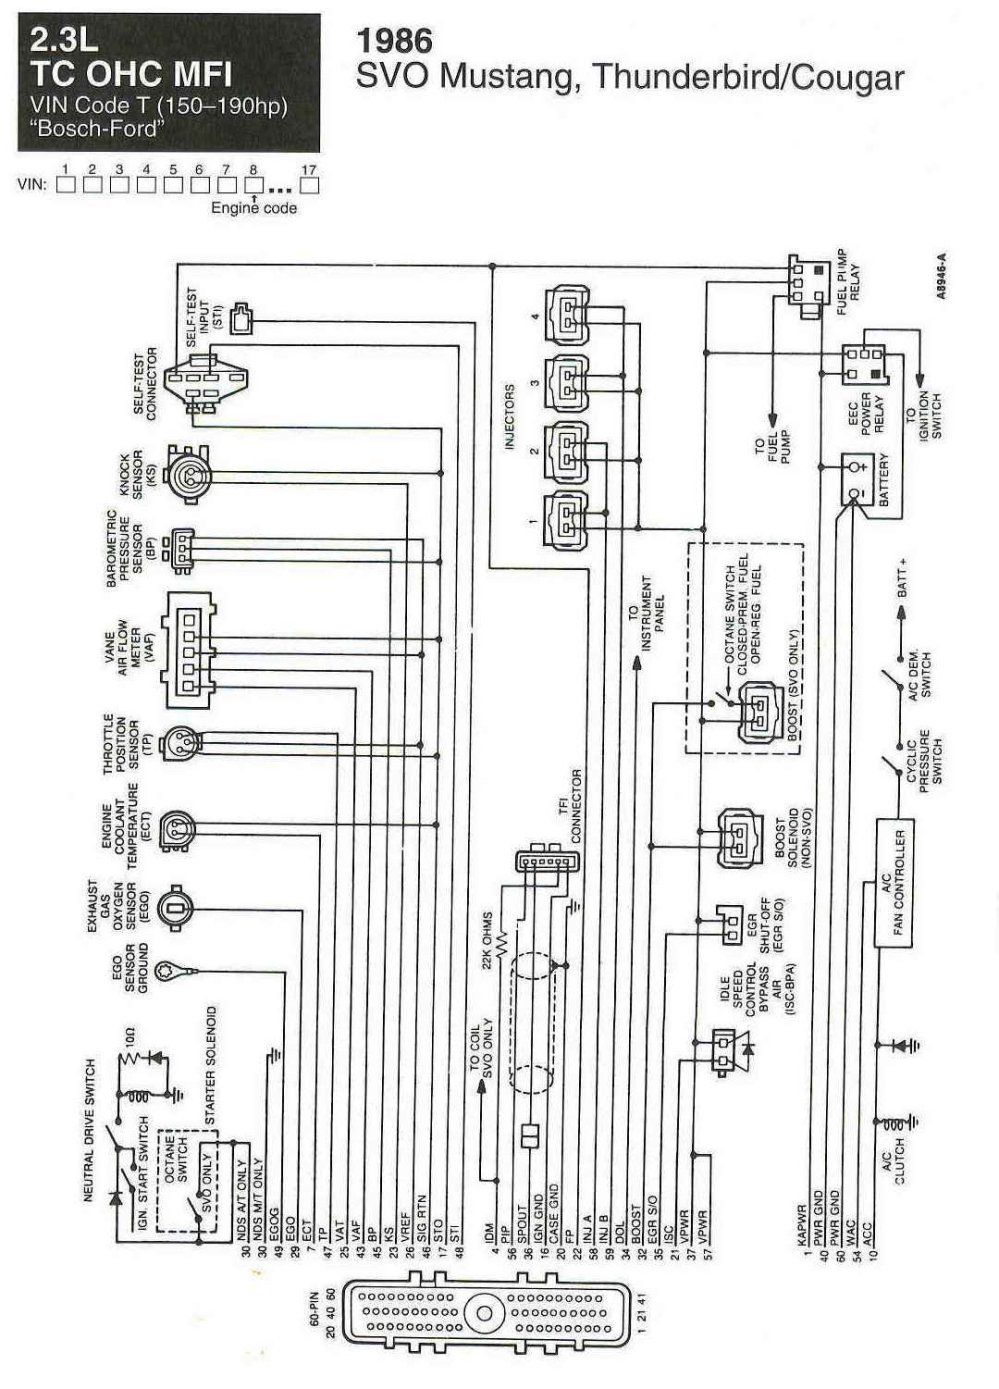 medium resolution of wiring diagrams for svo ford mustang forum 1986 mustang wiring diagram on wiring diagram for 1986 mustang